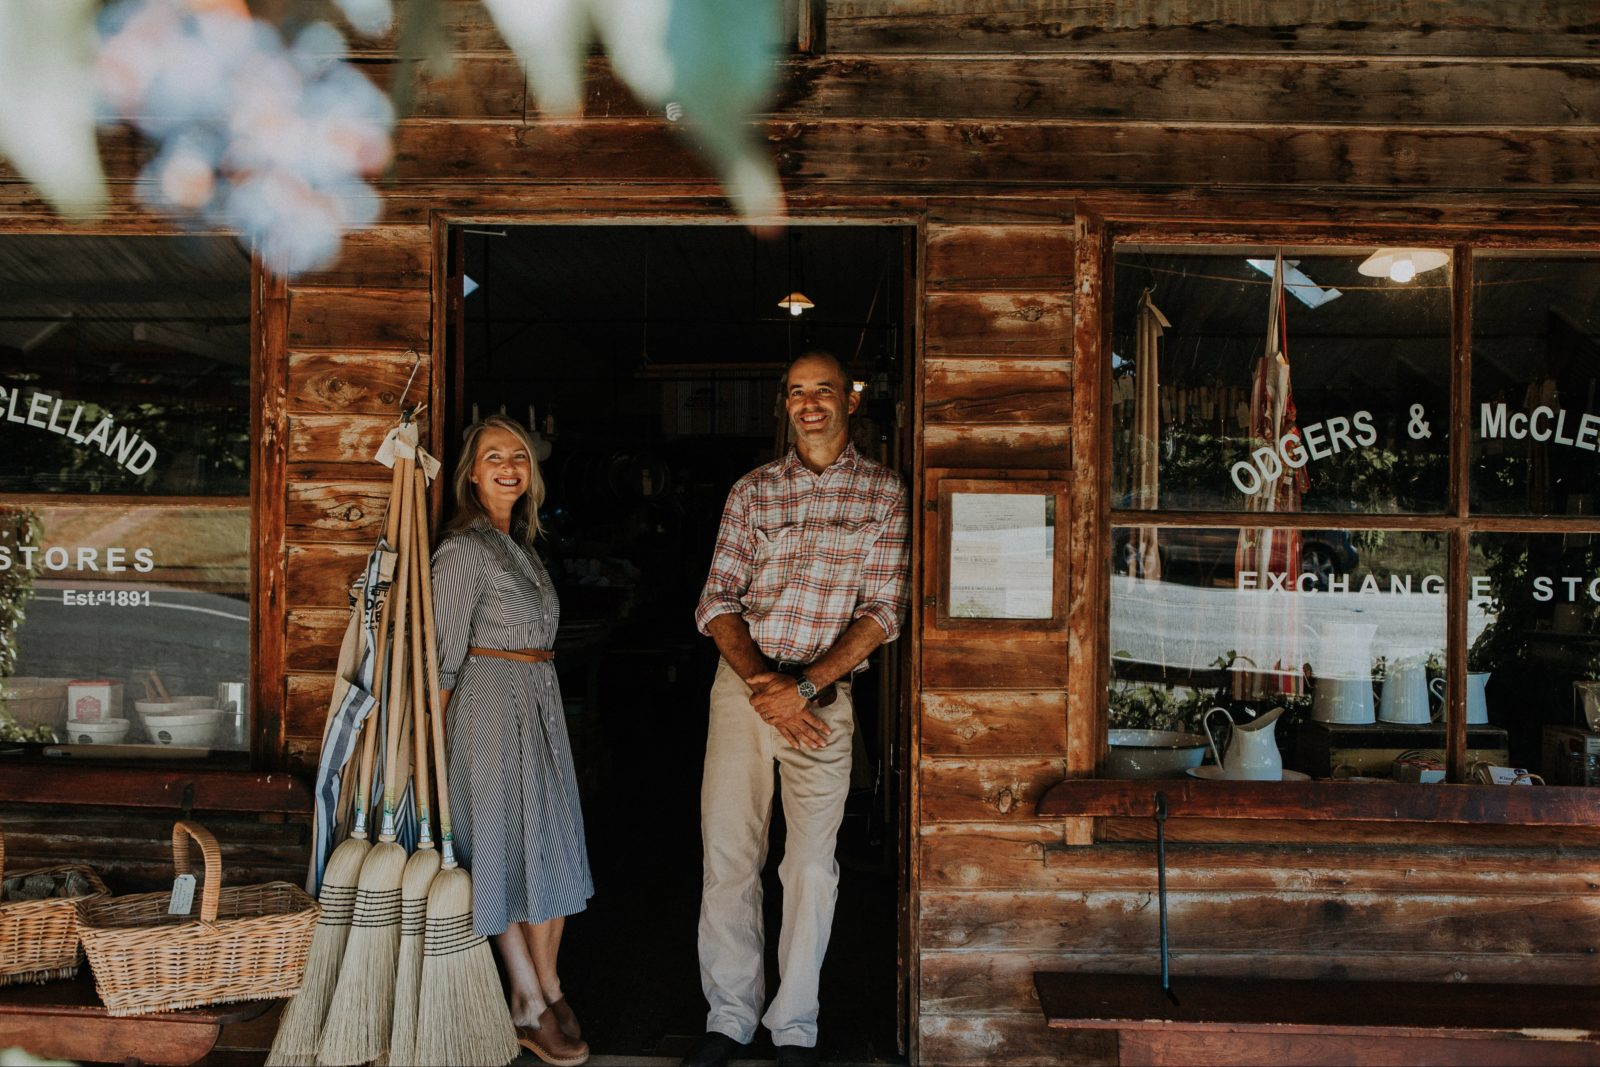 Odgers and McClelland Exchange Stores owners Megan and Duncan Trousdale.